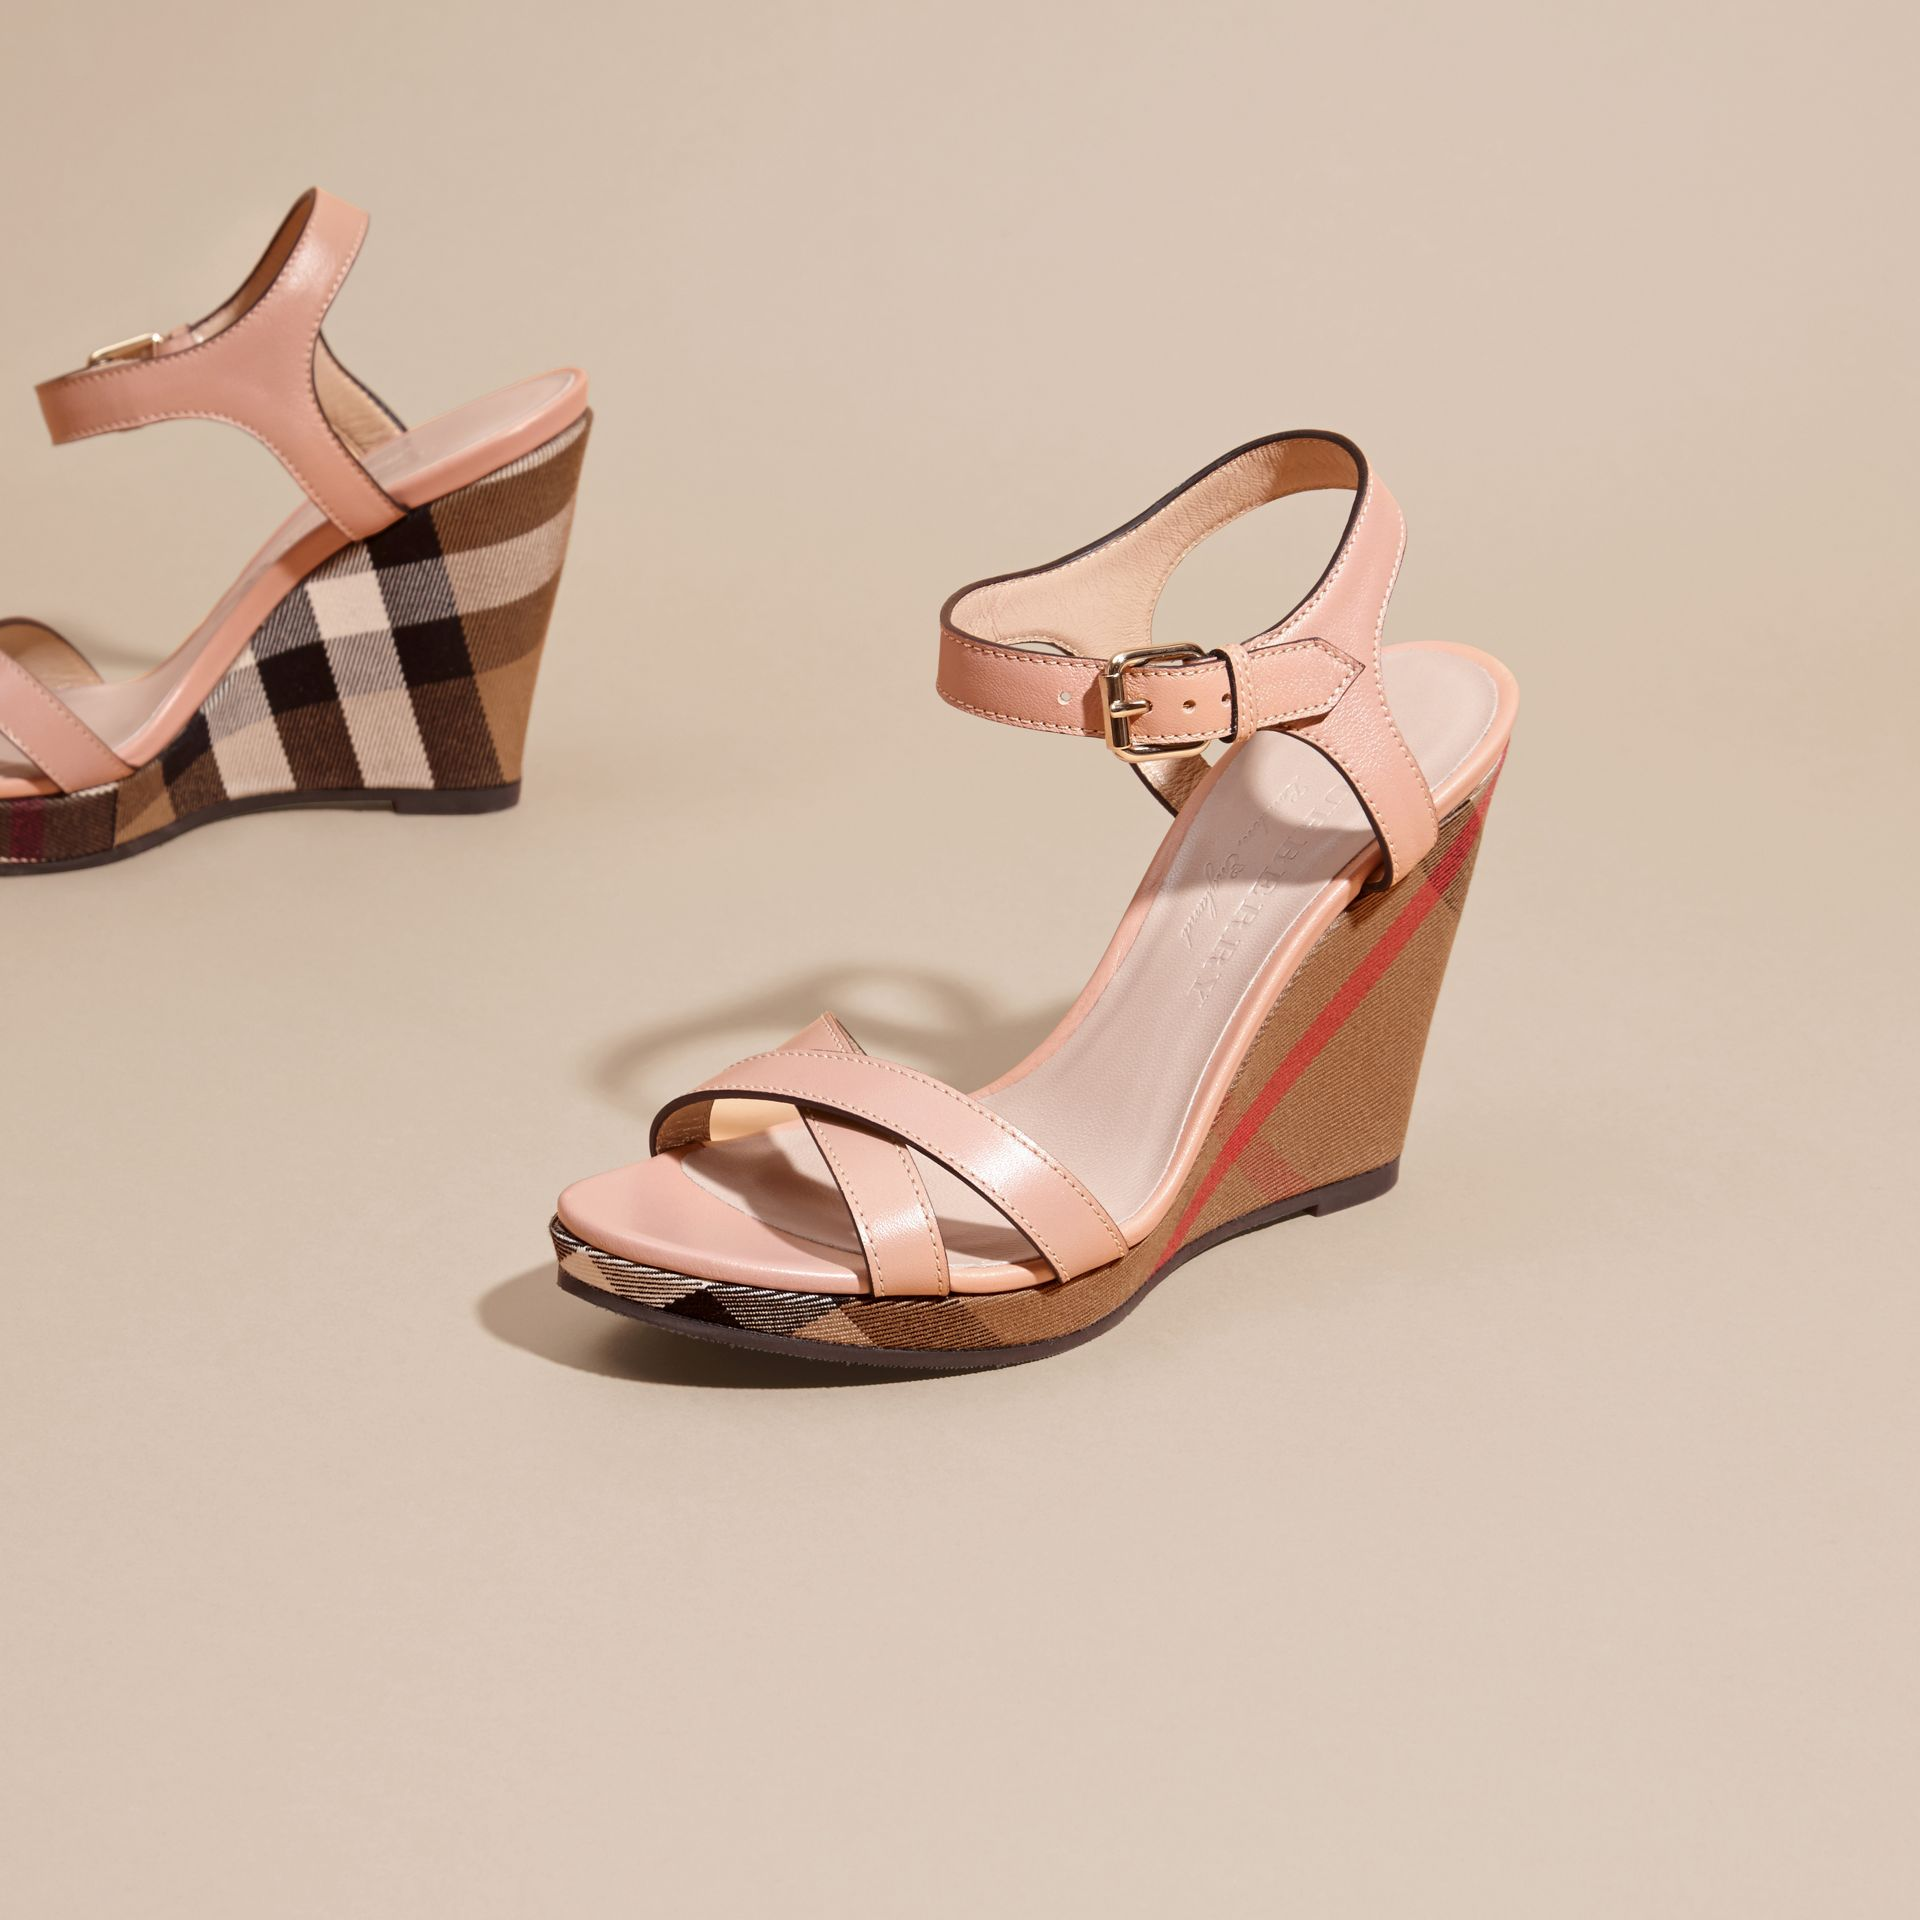 House Check Detail Leather Wedge Sandals in Nude Blush - Women | Burberry - gallery image 3